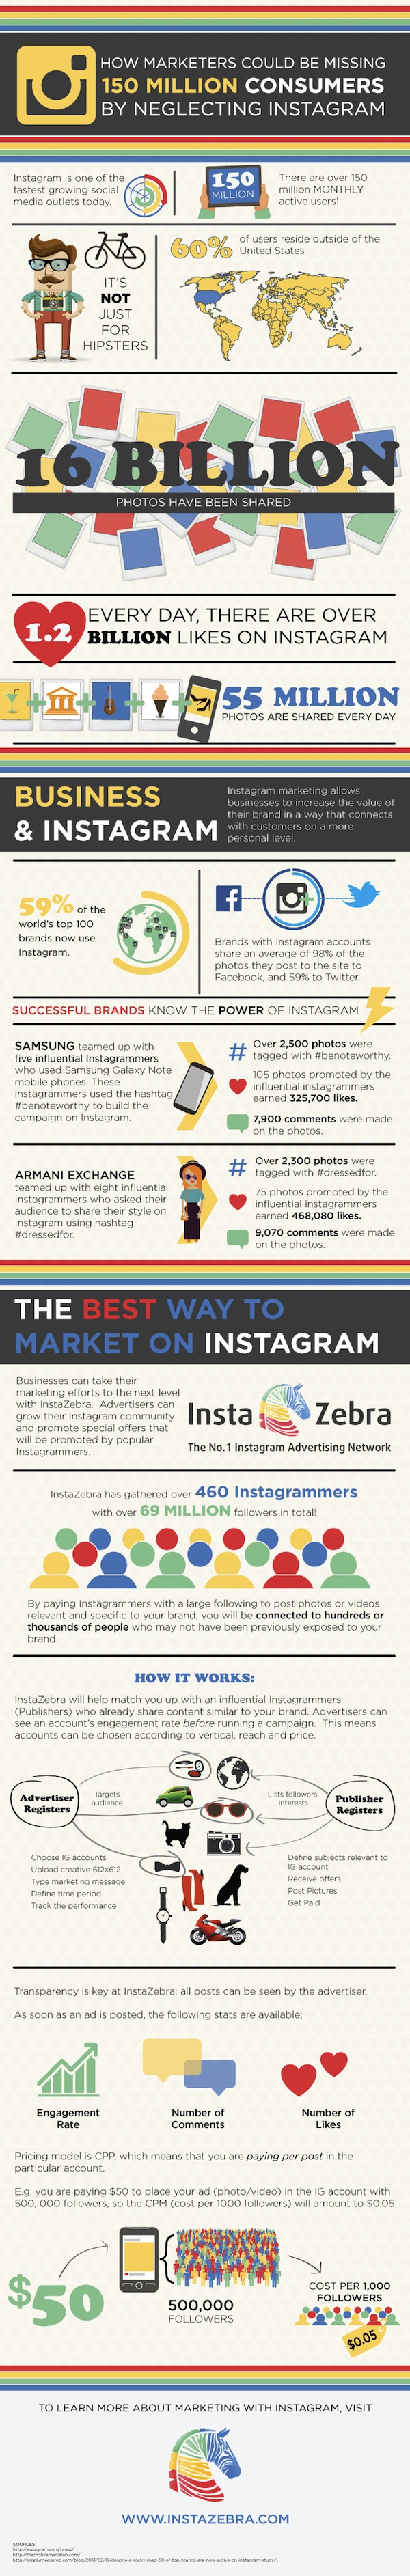 Marketers Guide To Instagram